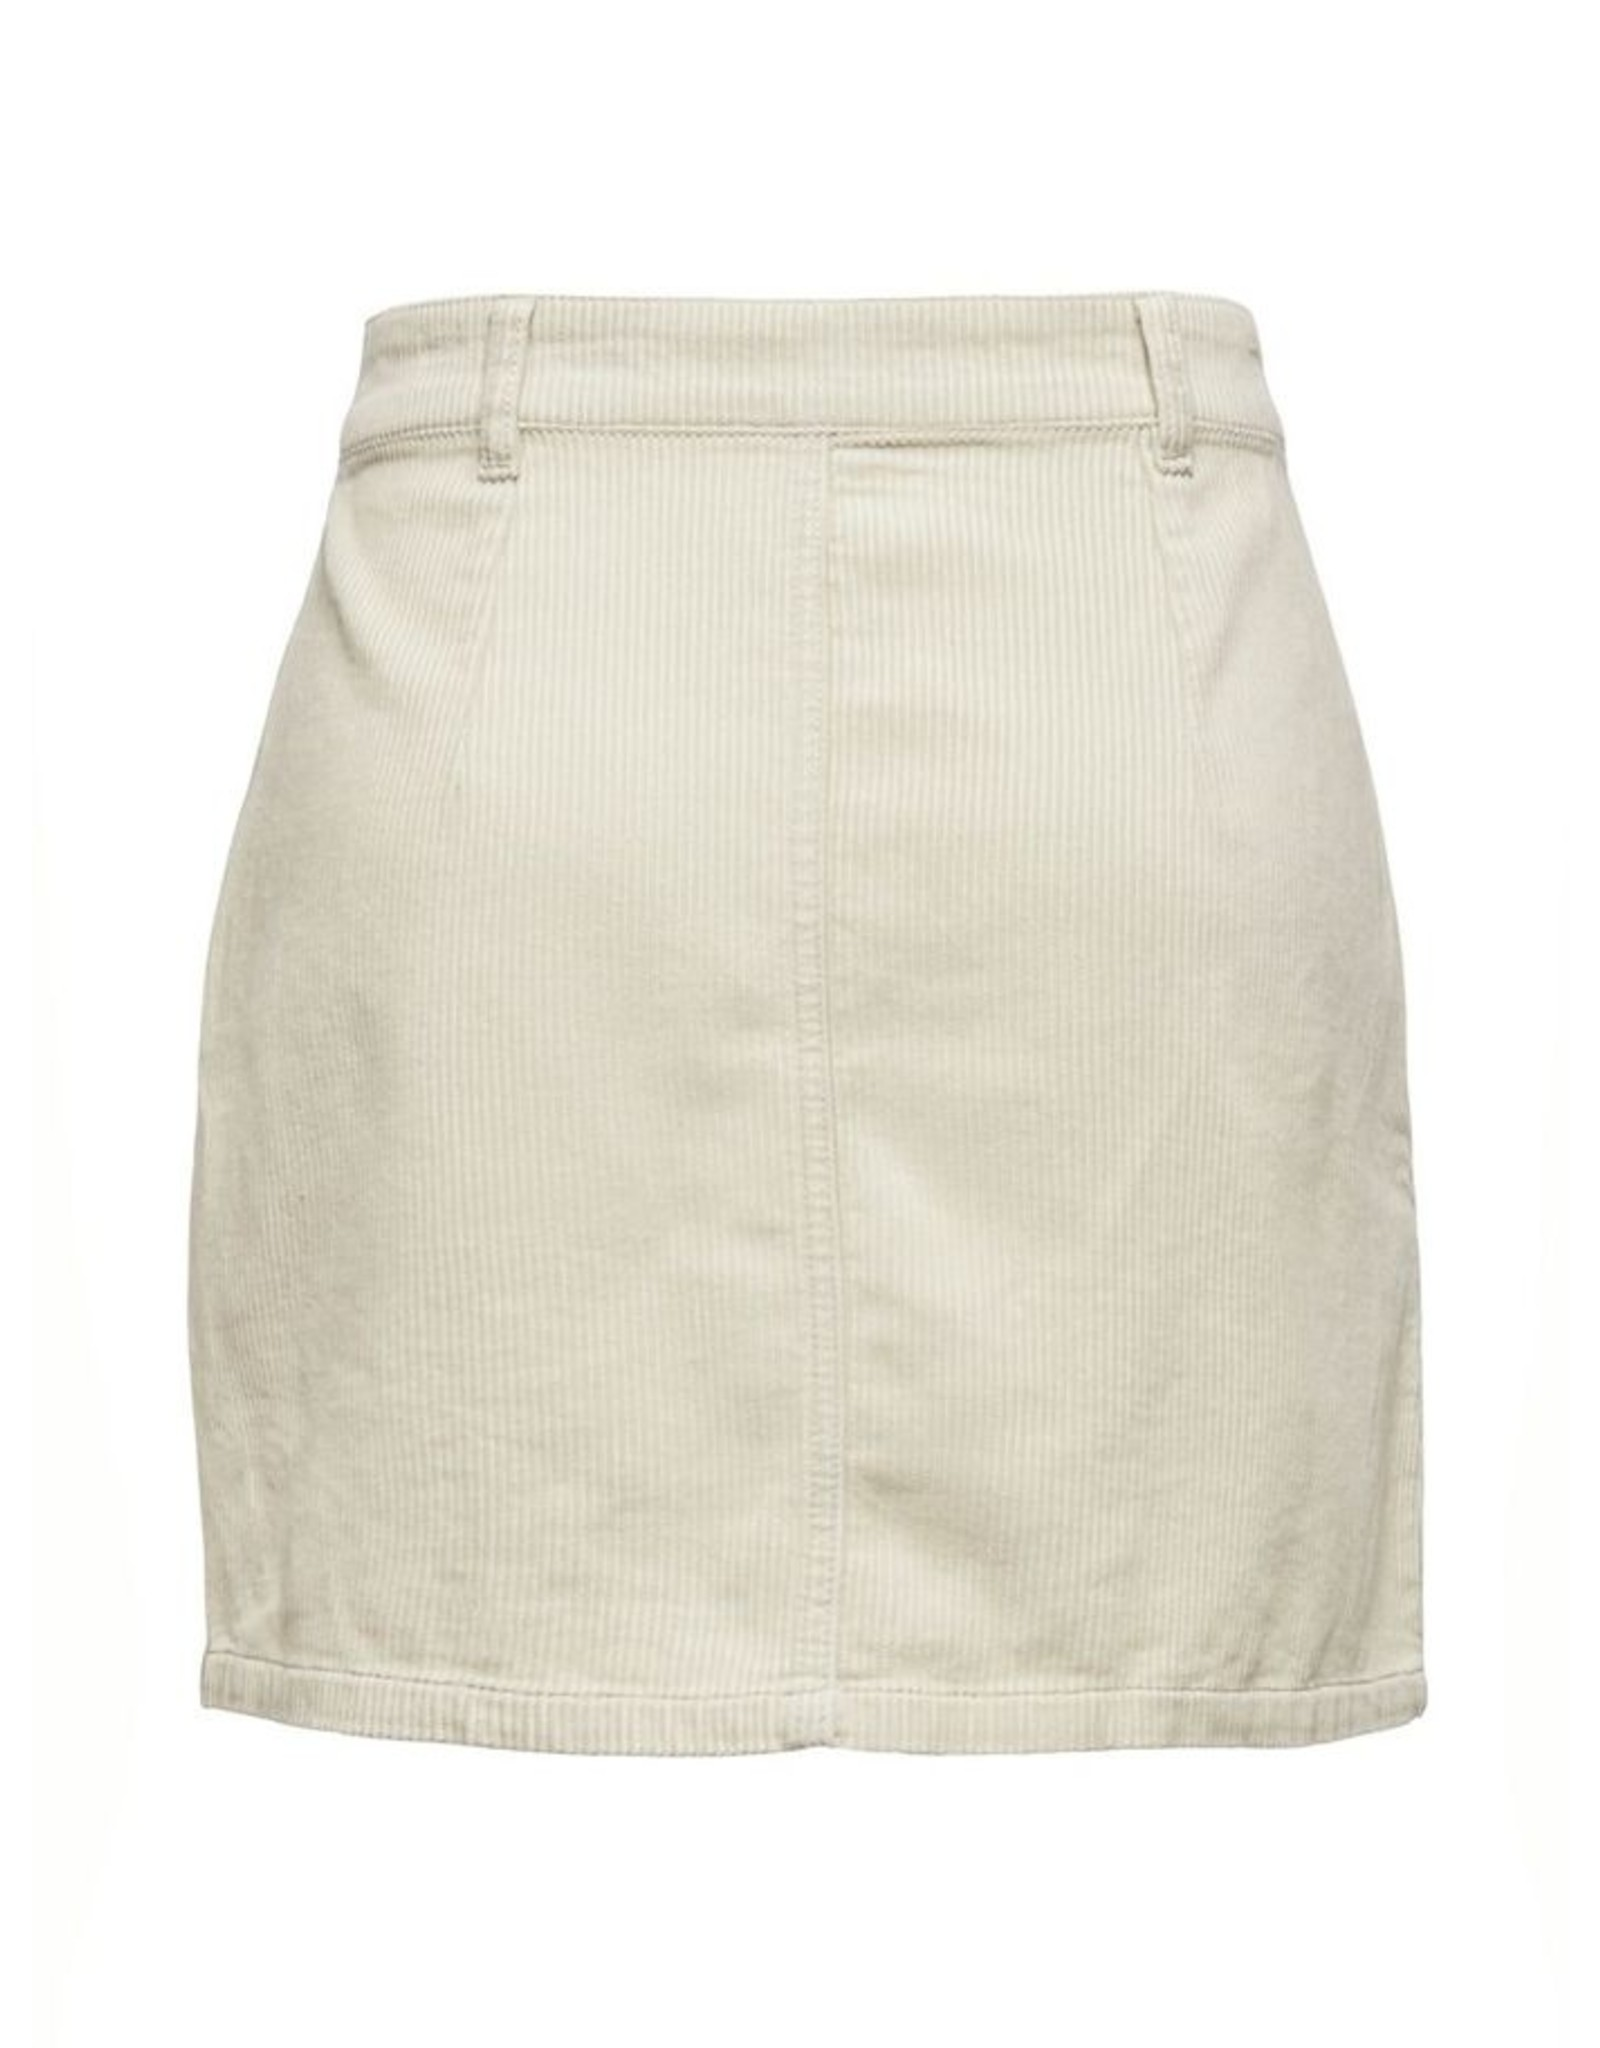 CORD BUTTON SKIRT OFFWHITE